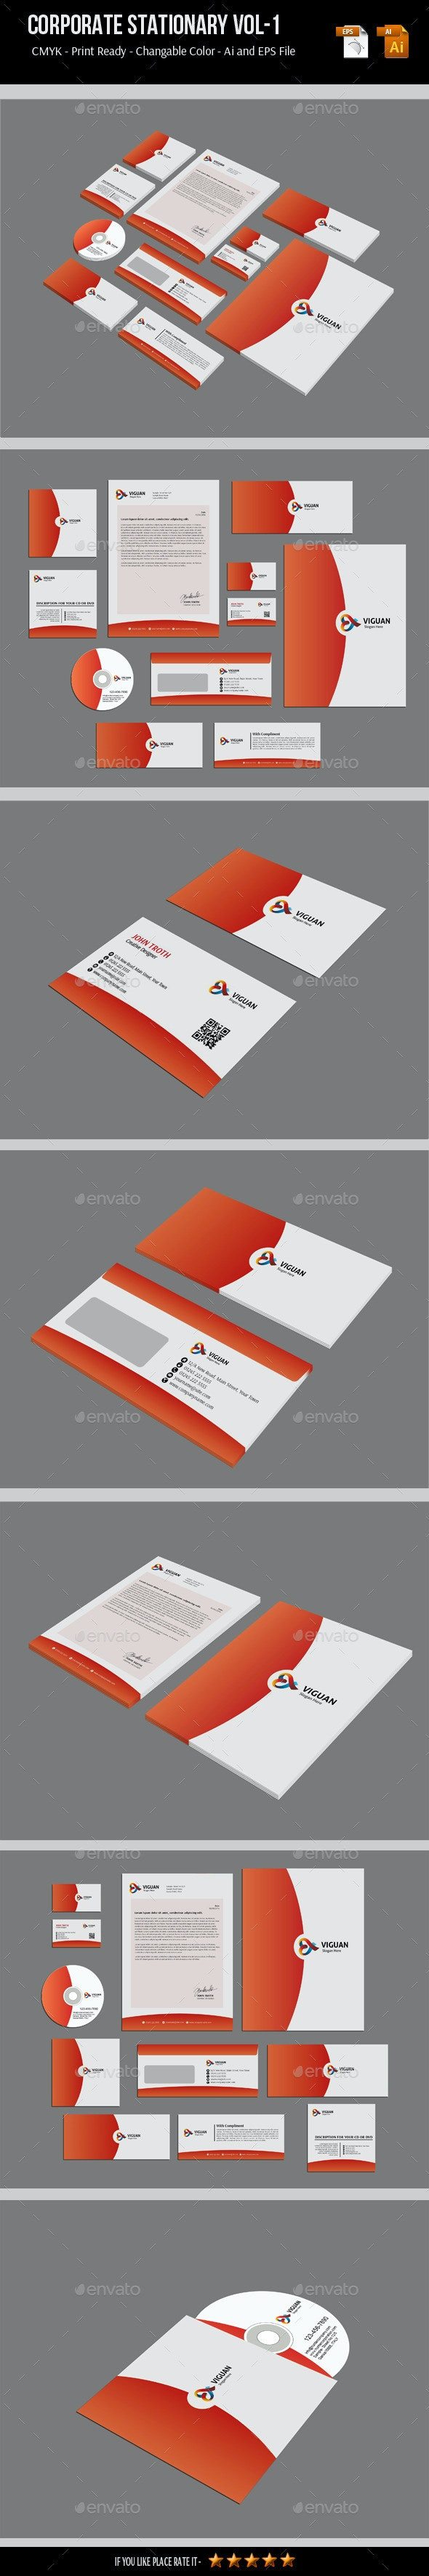 Corporate Stationary Vol-1 - Stationery Print Templates